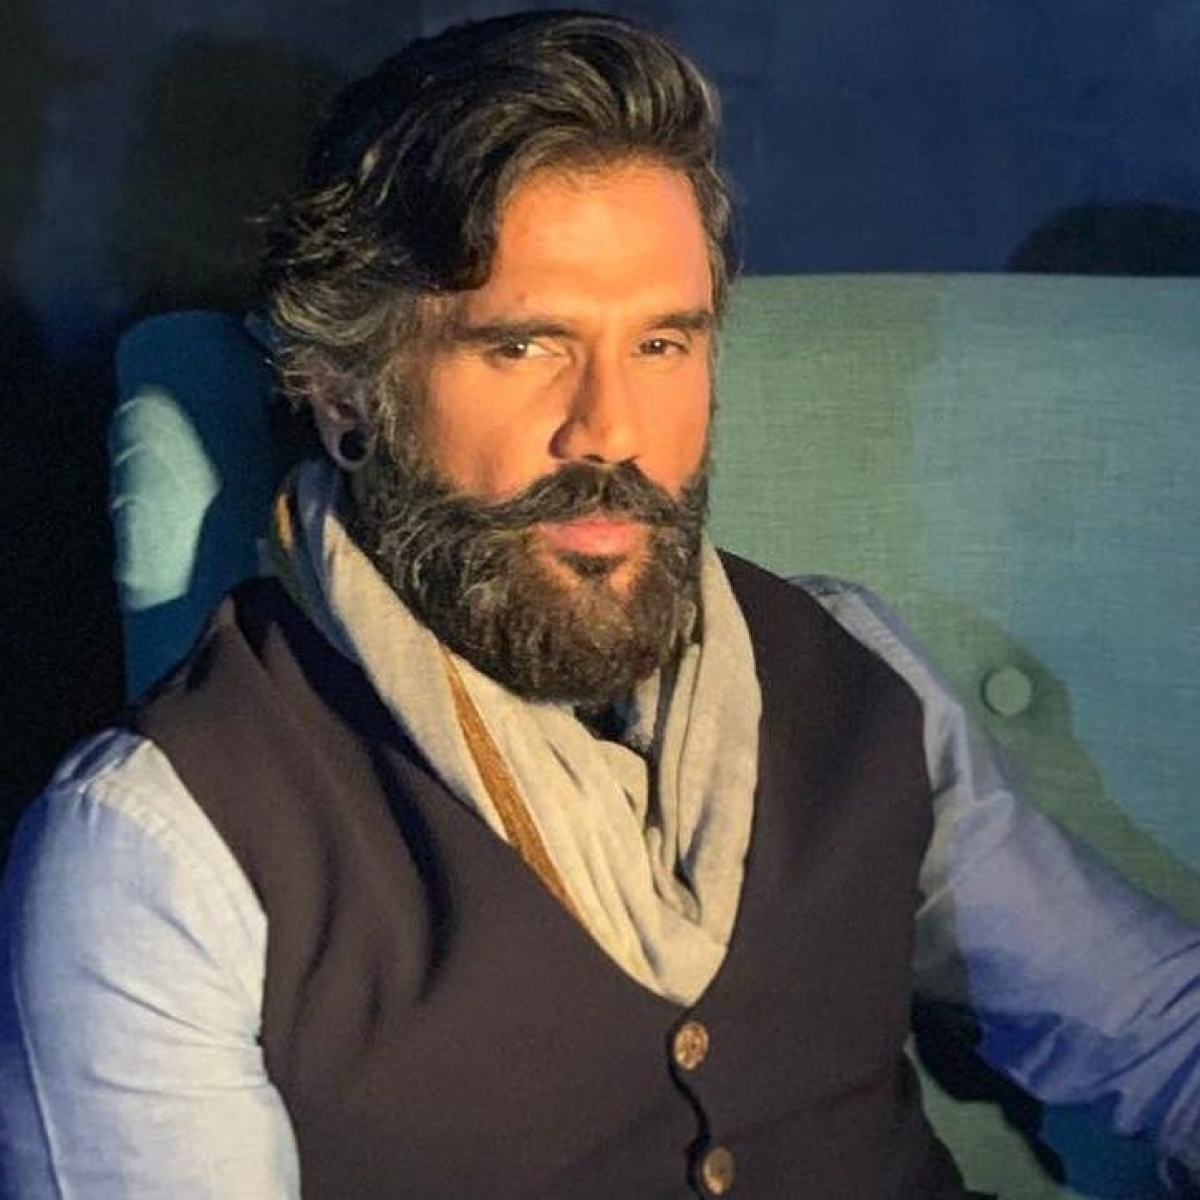 'It hurt me when they said I am against farmers': Suniel Shetty on being trolled for his tweet with MEA statement